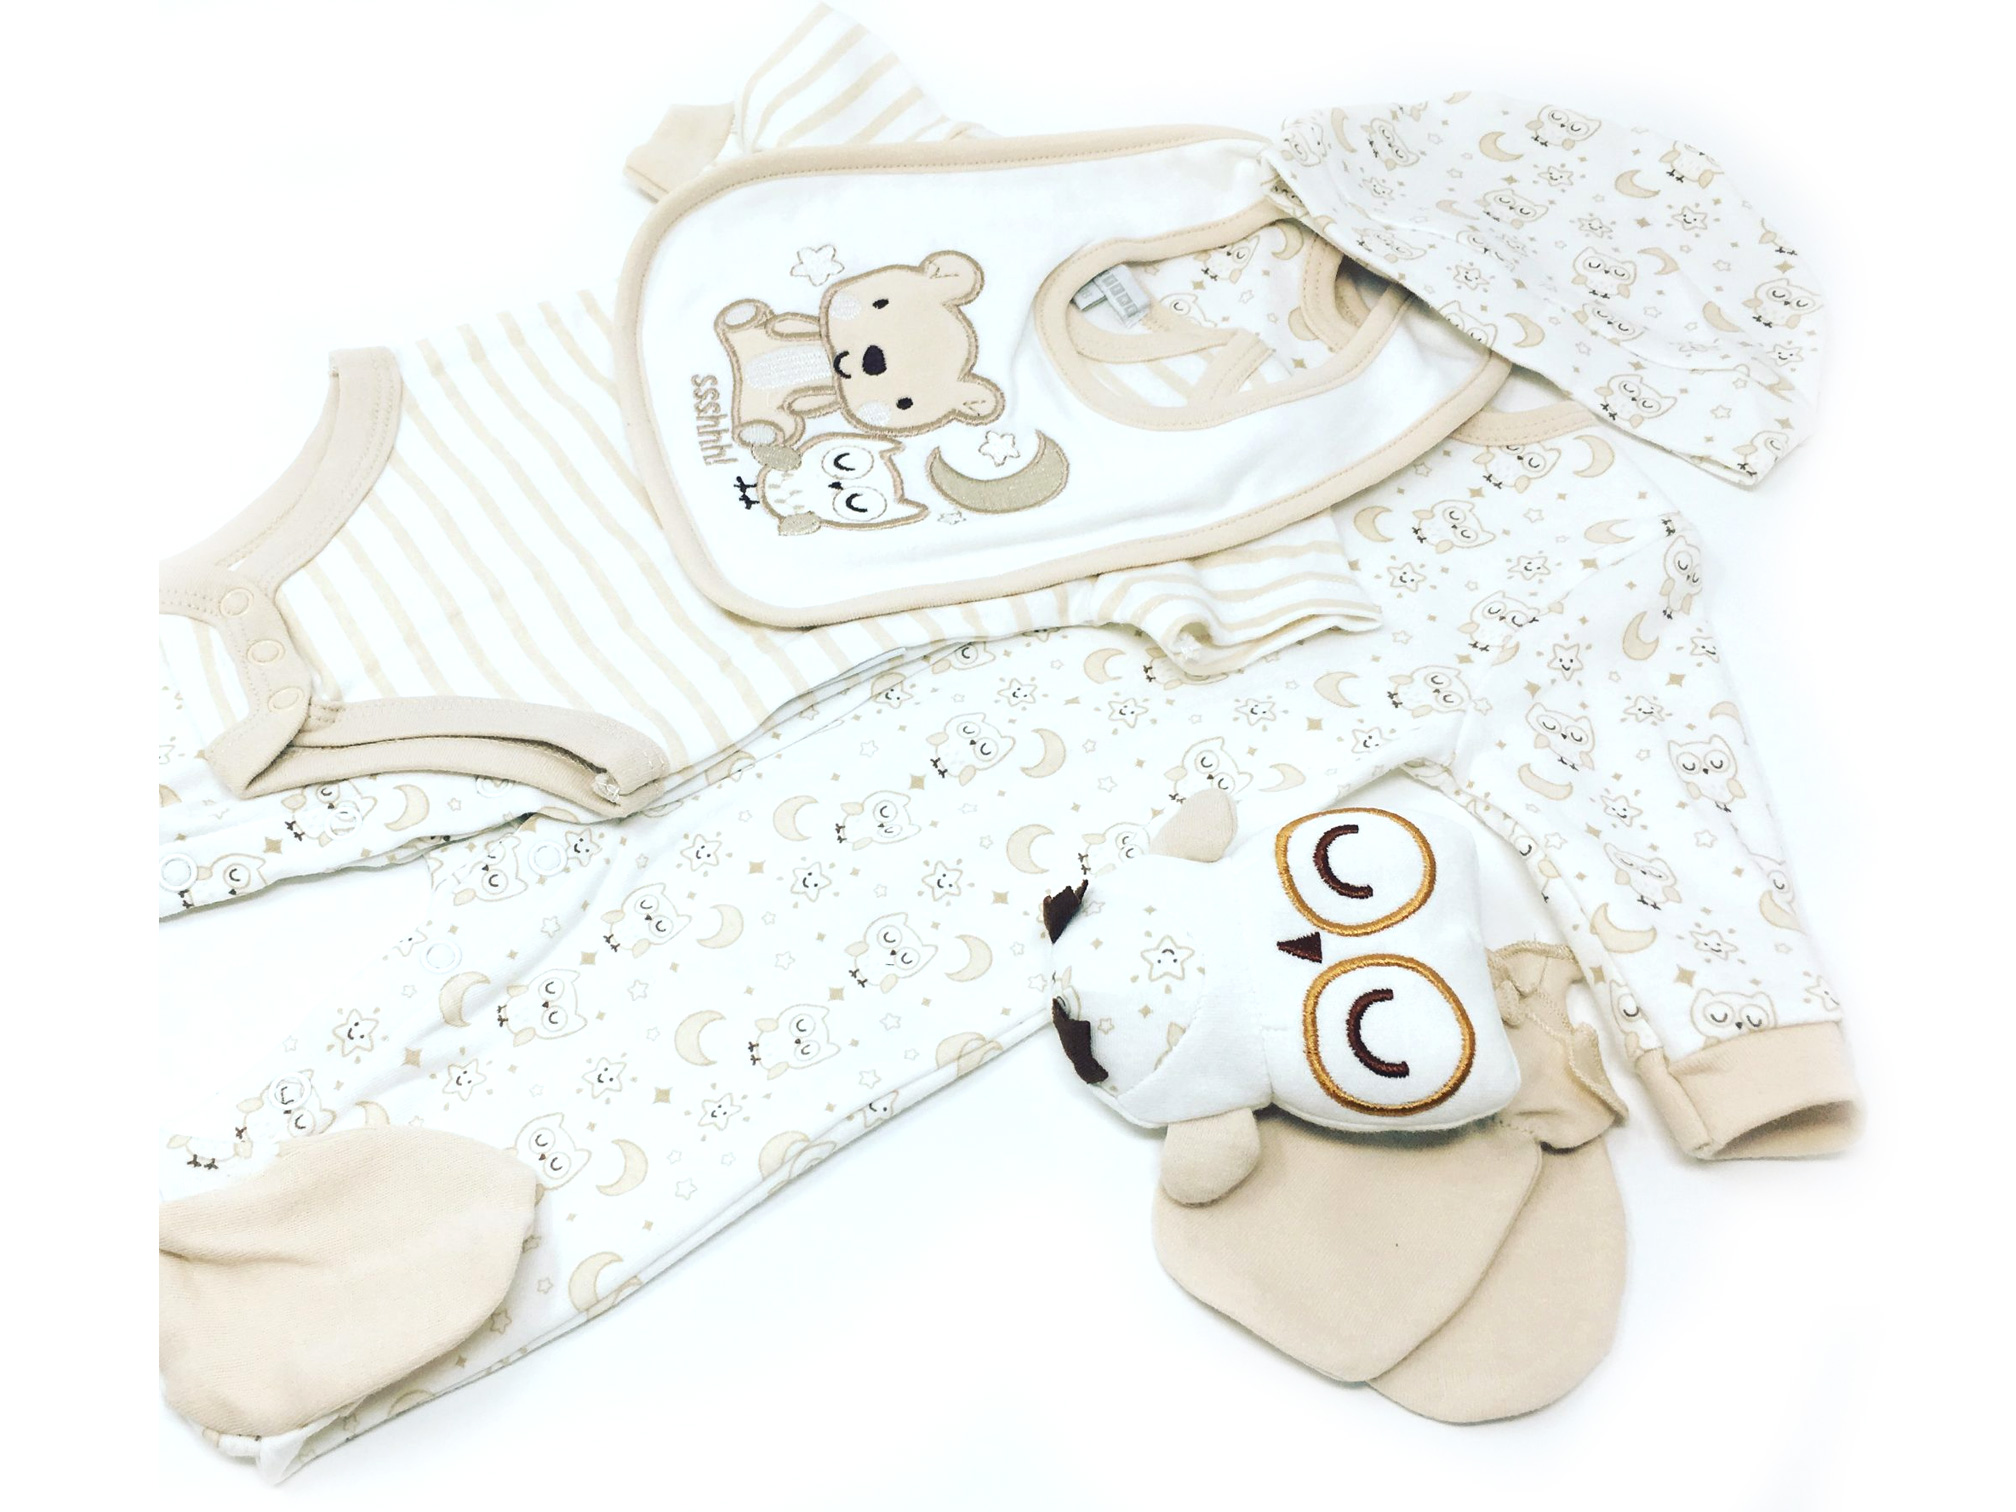 Baby Unisex Clothing. At George, we have an adorable range of baby unisex clothing, from cosy bodysuits, bibs, to practical blankets in stylish designs to keep your little bundle of joy looking great all year around. Unisex clothes are the ideal baby shower present, especially when expectant parents are unsure of the new arrival's gender.